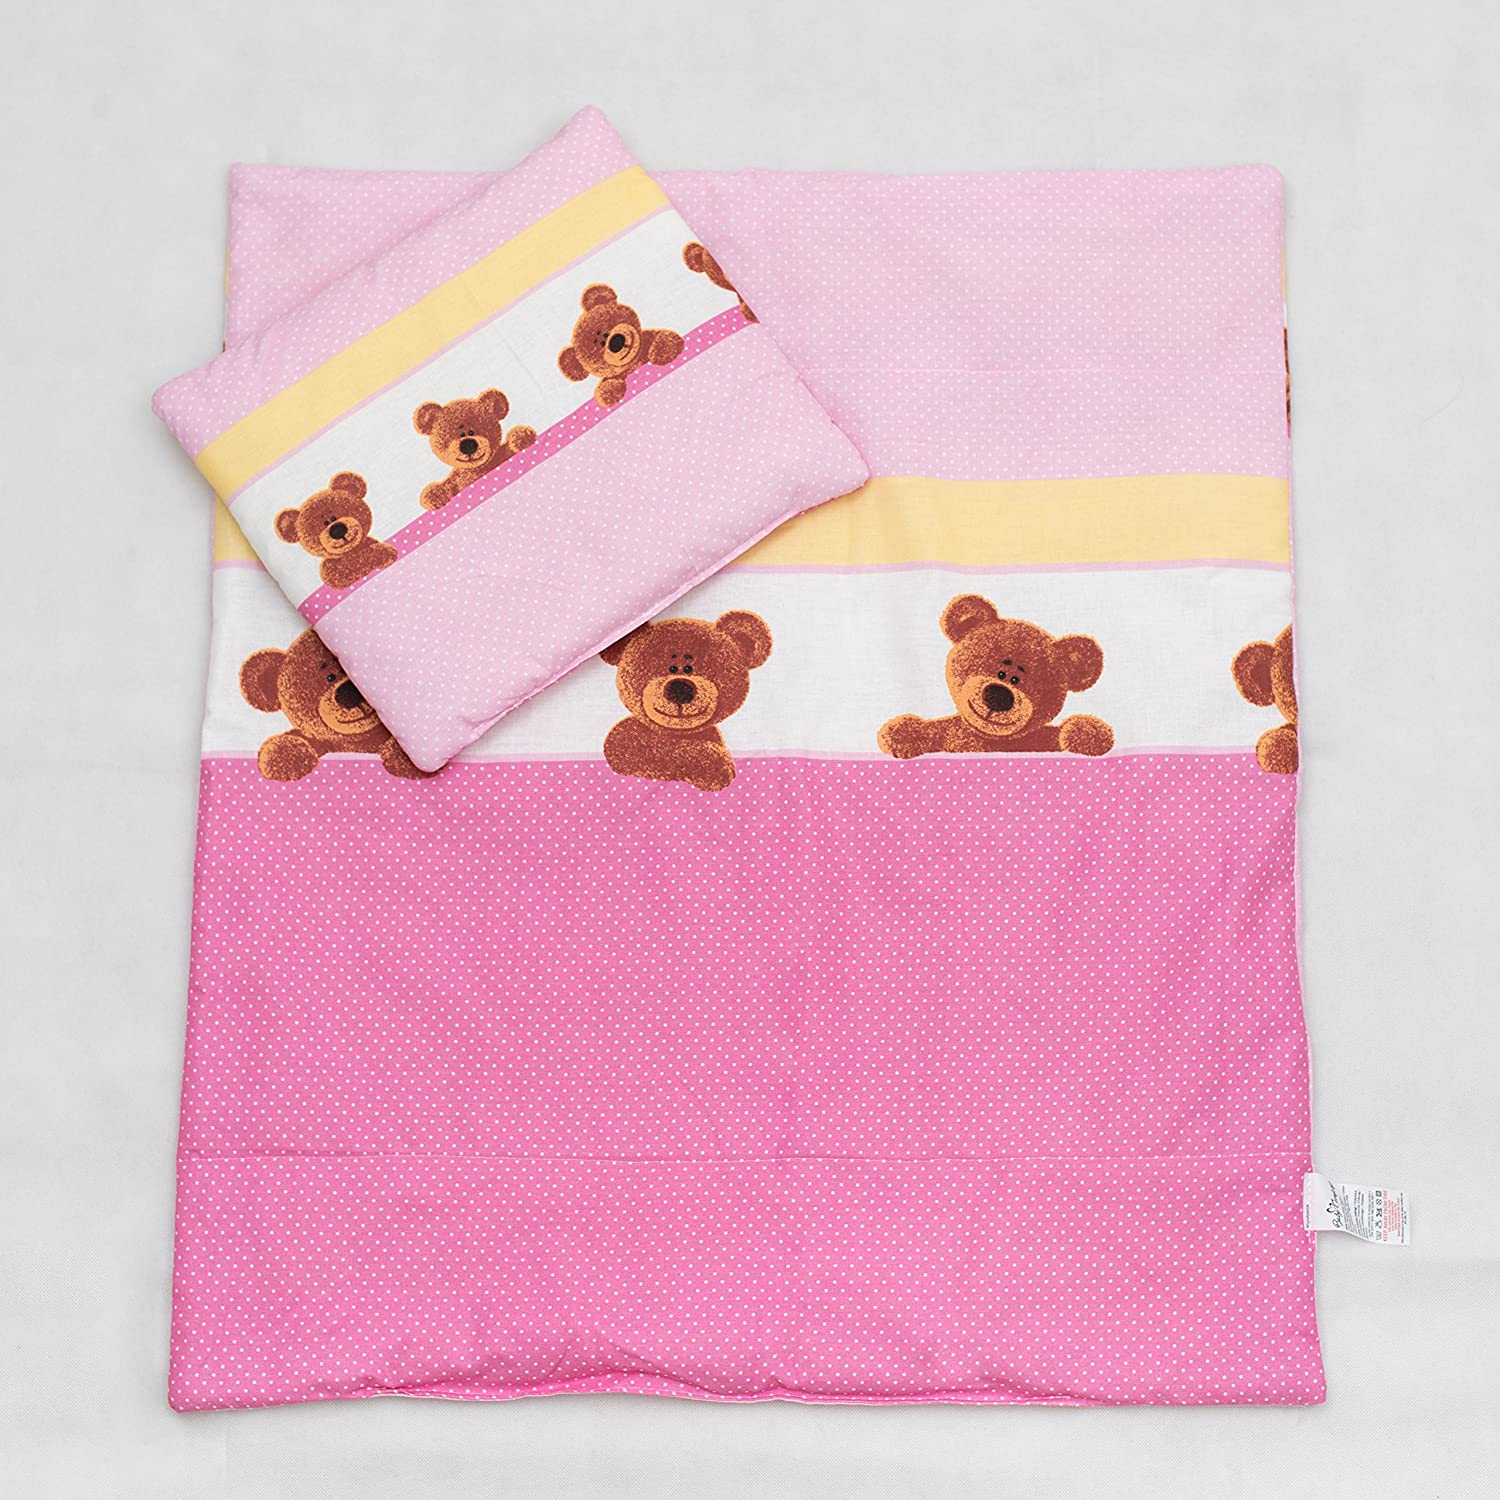 2 Pcs Duvet Filling Set 120x90 cm, Suits Cot - Pattern 1 BabyComfort